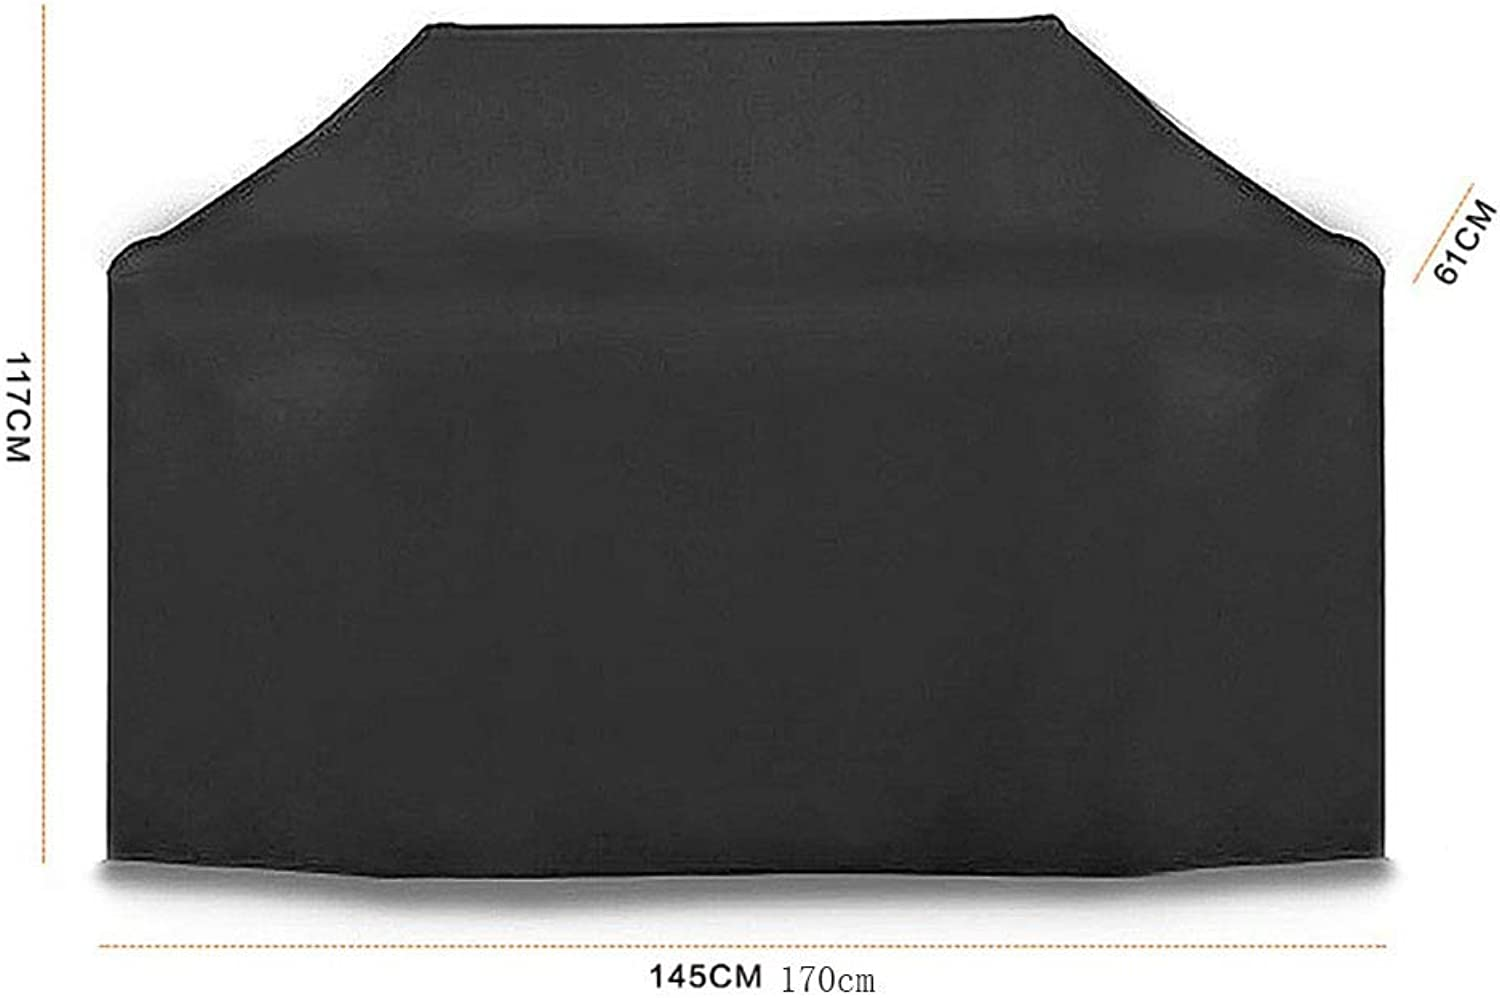 AY-cover Dust Guard Outdoor Dust Cover, Polyester Material, Grill Cover, Rain Sun Predection Windproof (color   Black, Size   145  61  117cm)